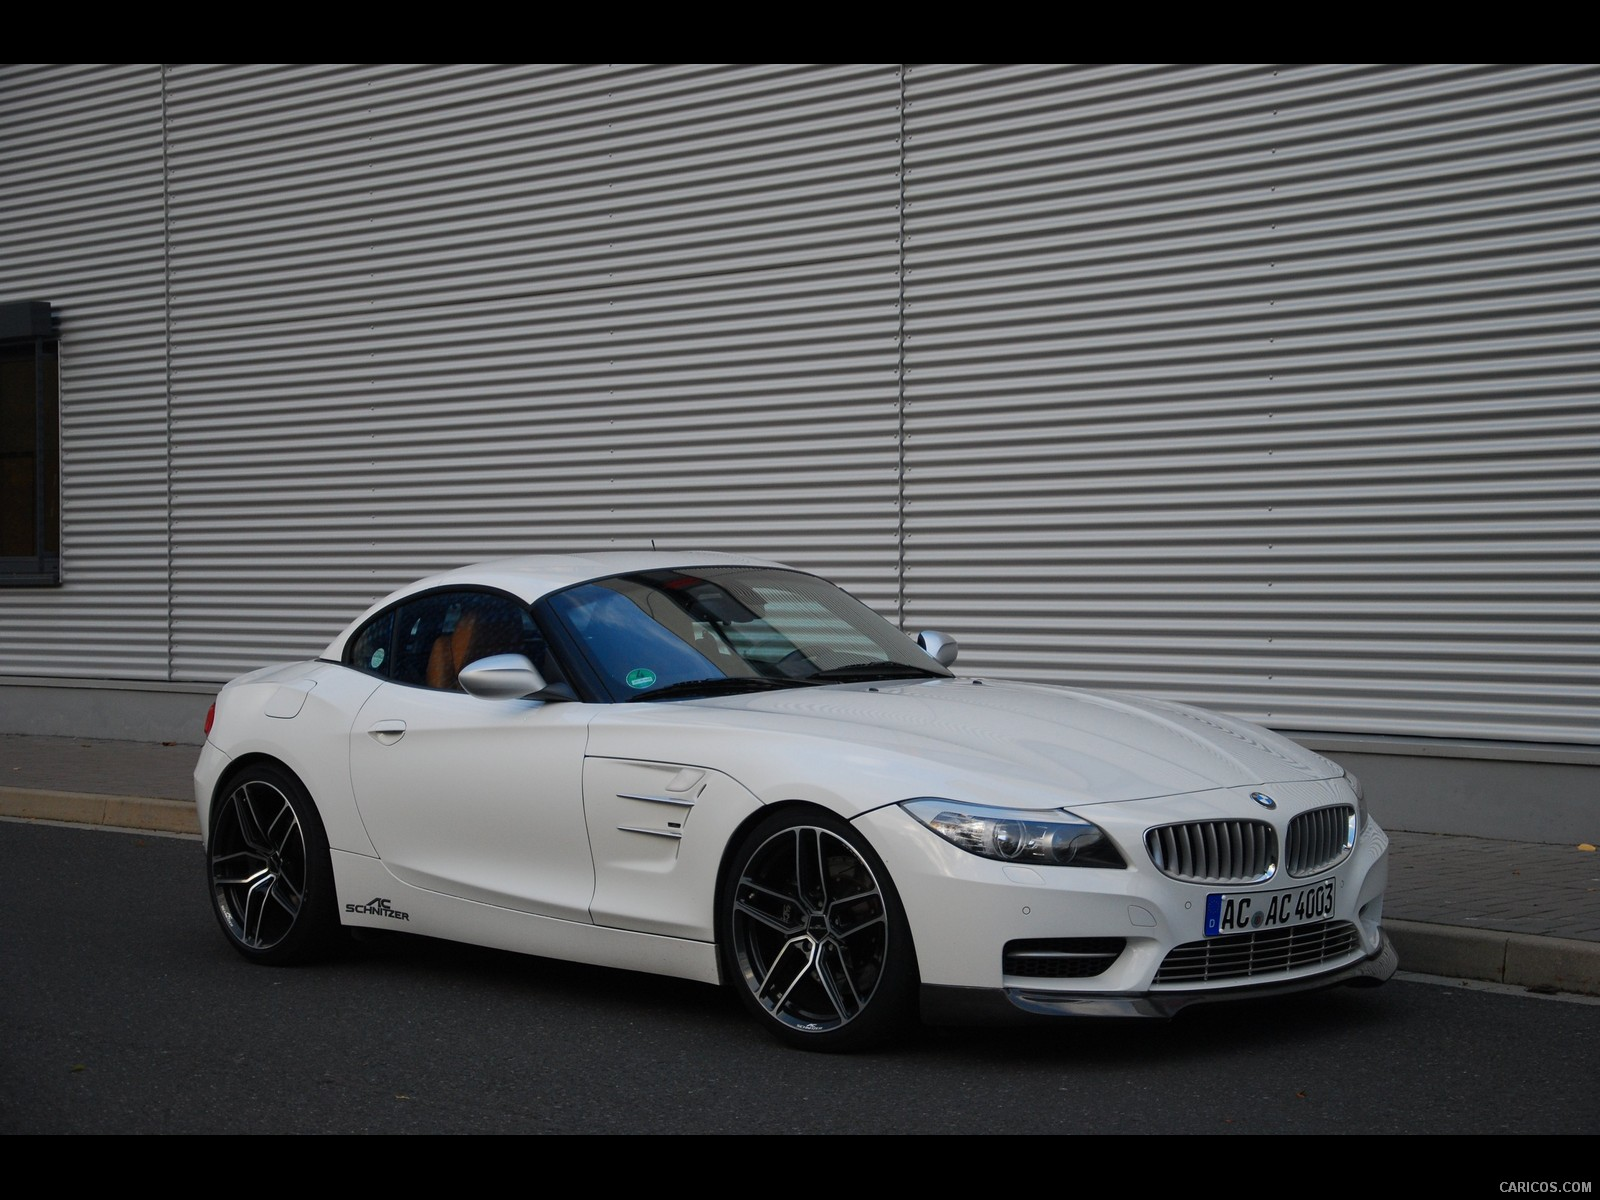 Ac Schnitzer Bmw Z4 35is M Technik Photos Photogallery With 33 Pics Carsbase Com